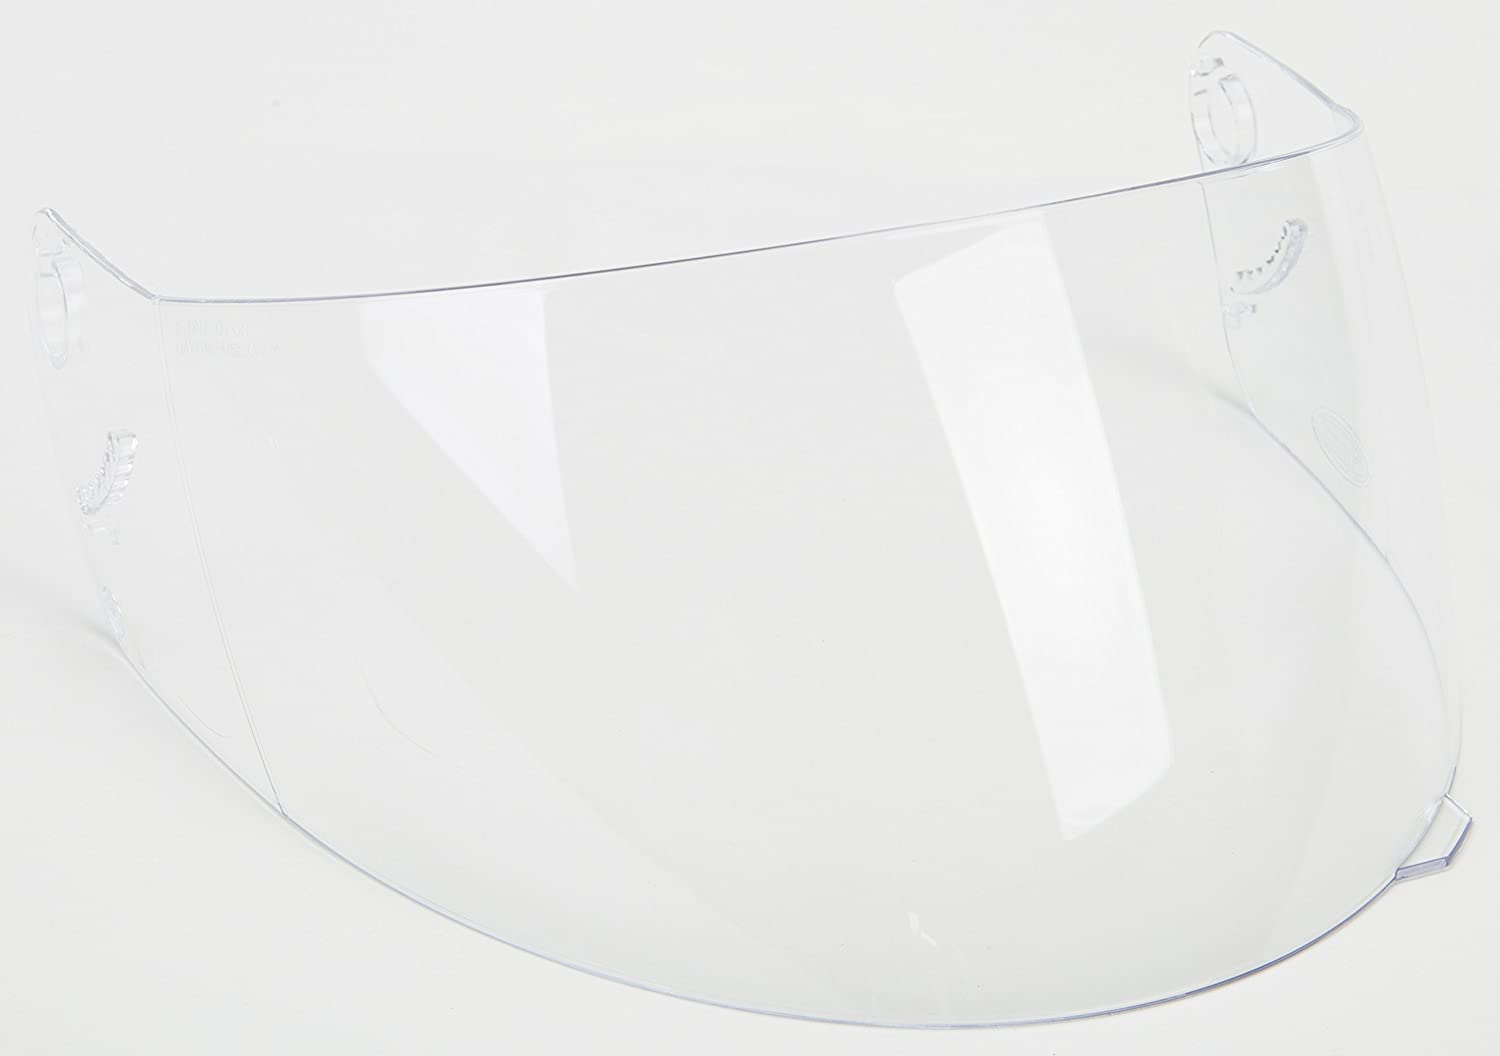 GMAX Clear Single Lens Shield Helmets for MD-04 / MD-04S, GM-44 / GM-44S Helmets G999541